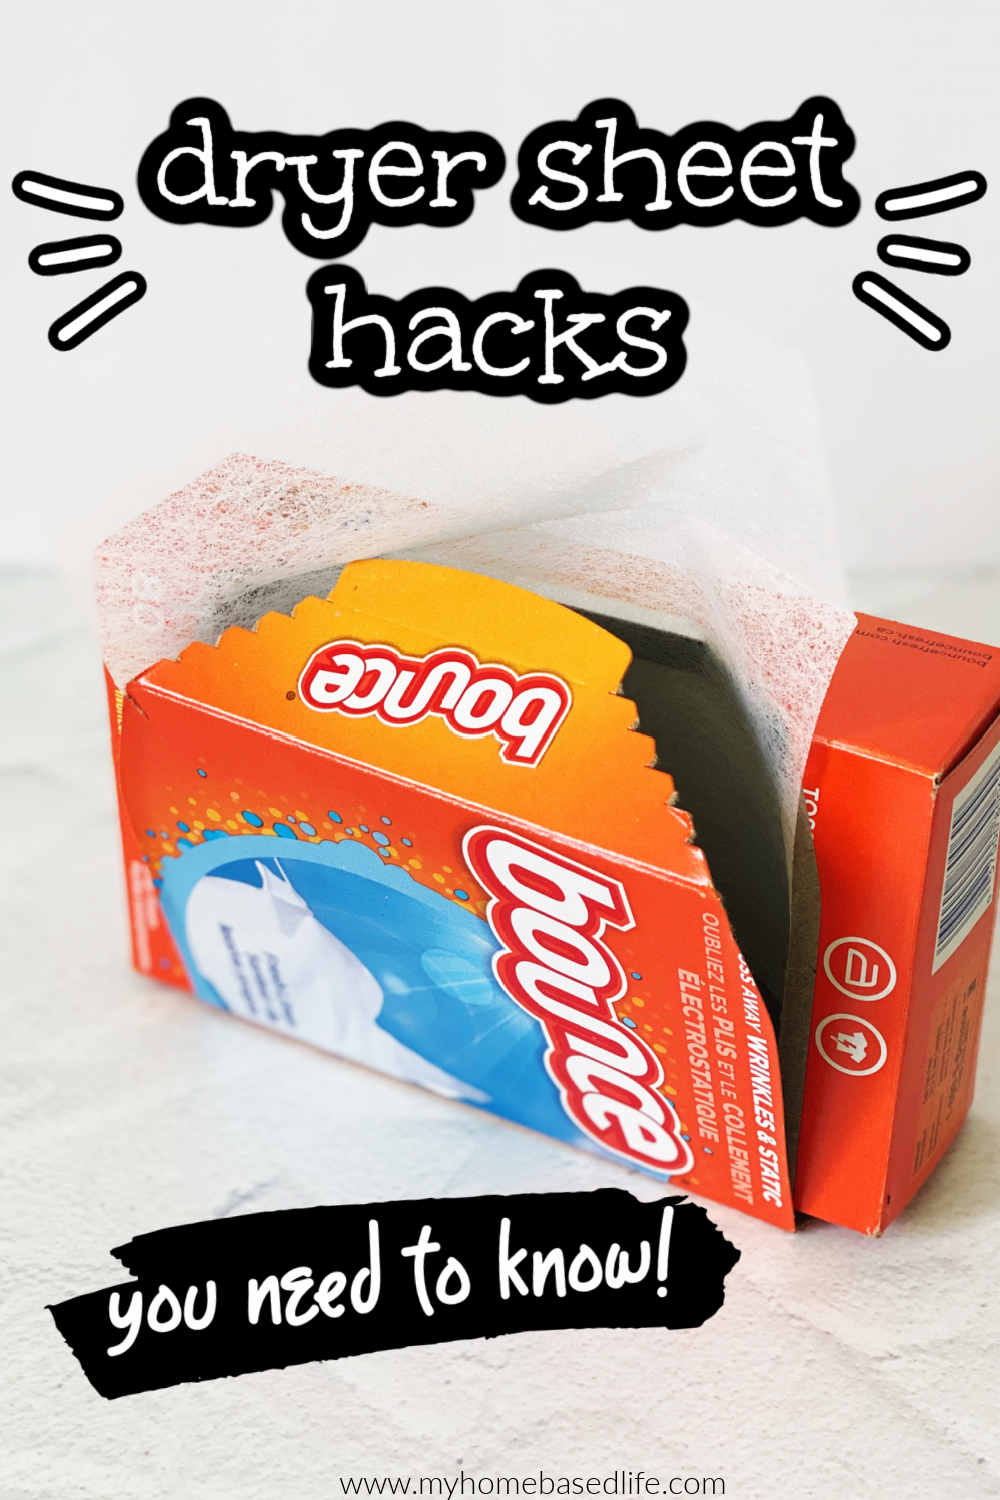 dryer sheet hacks for cleaning and more